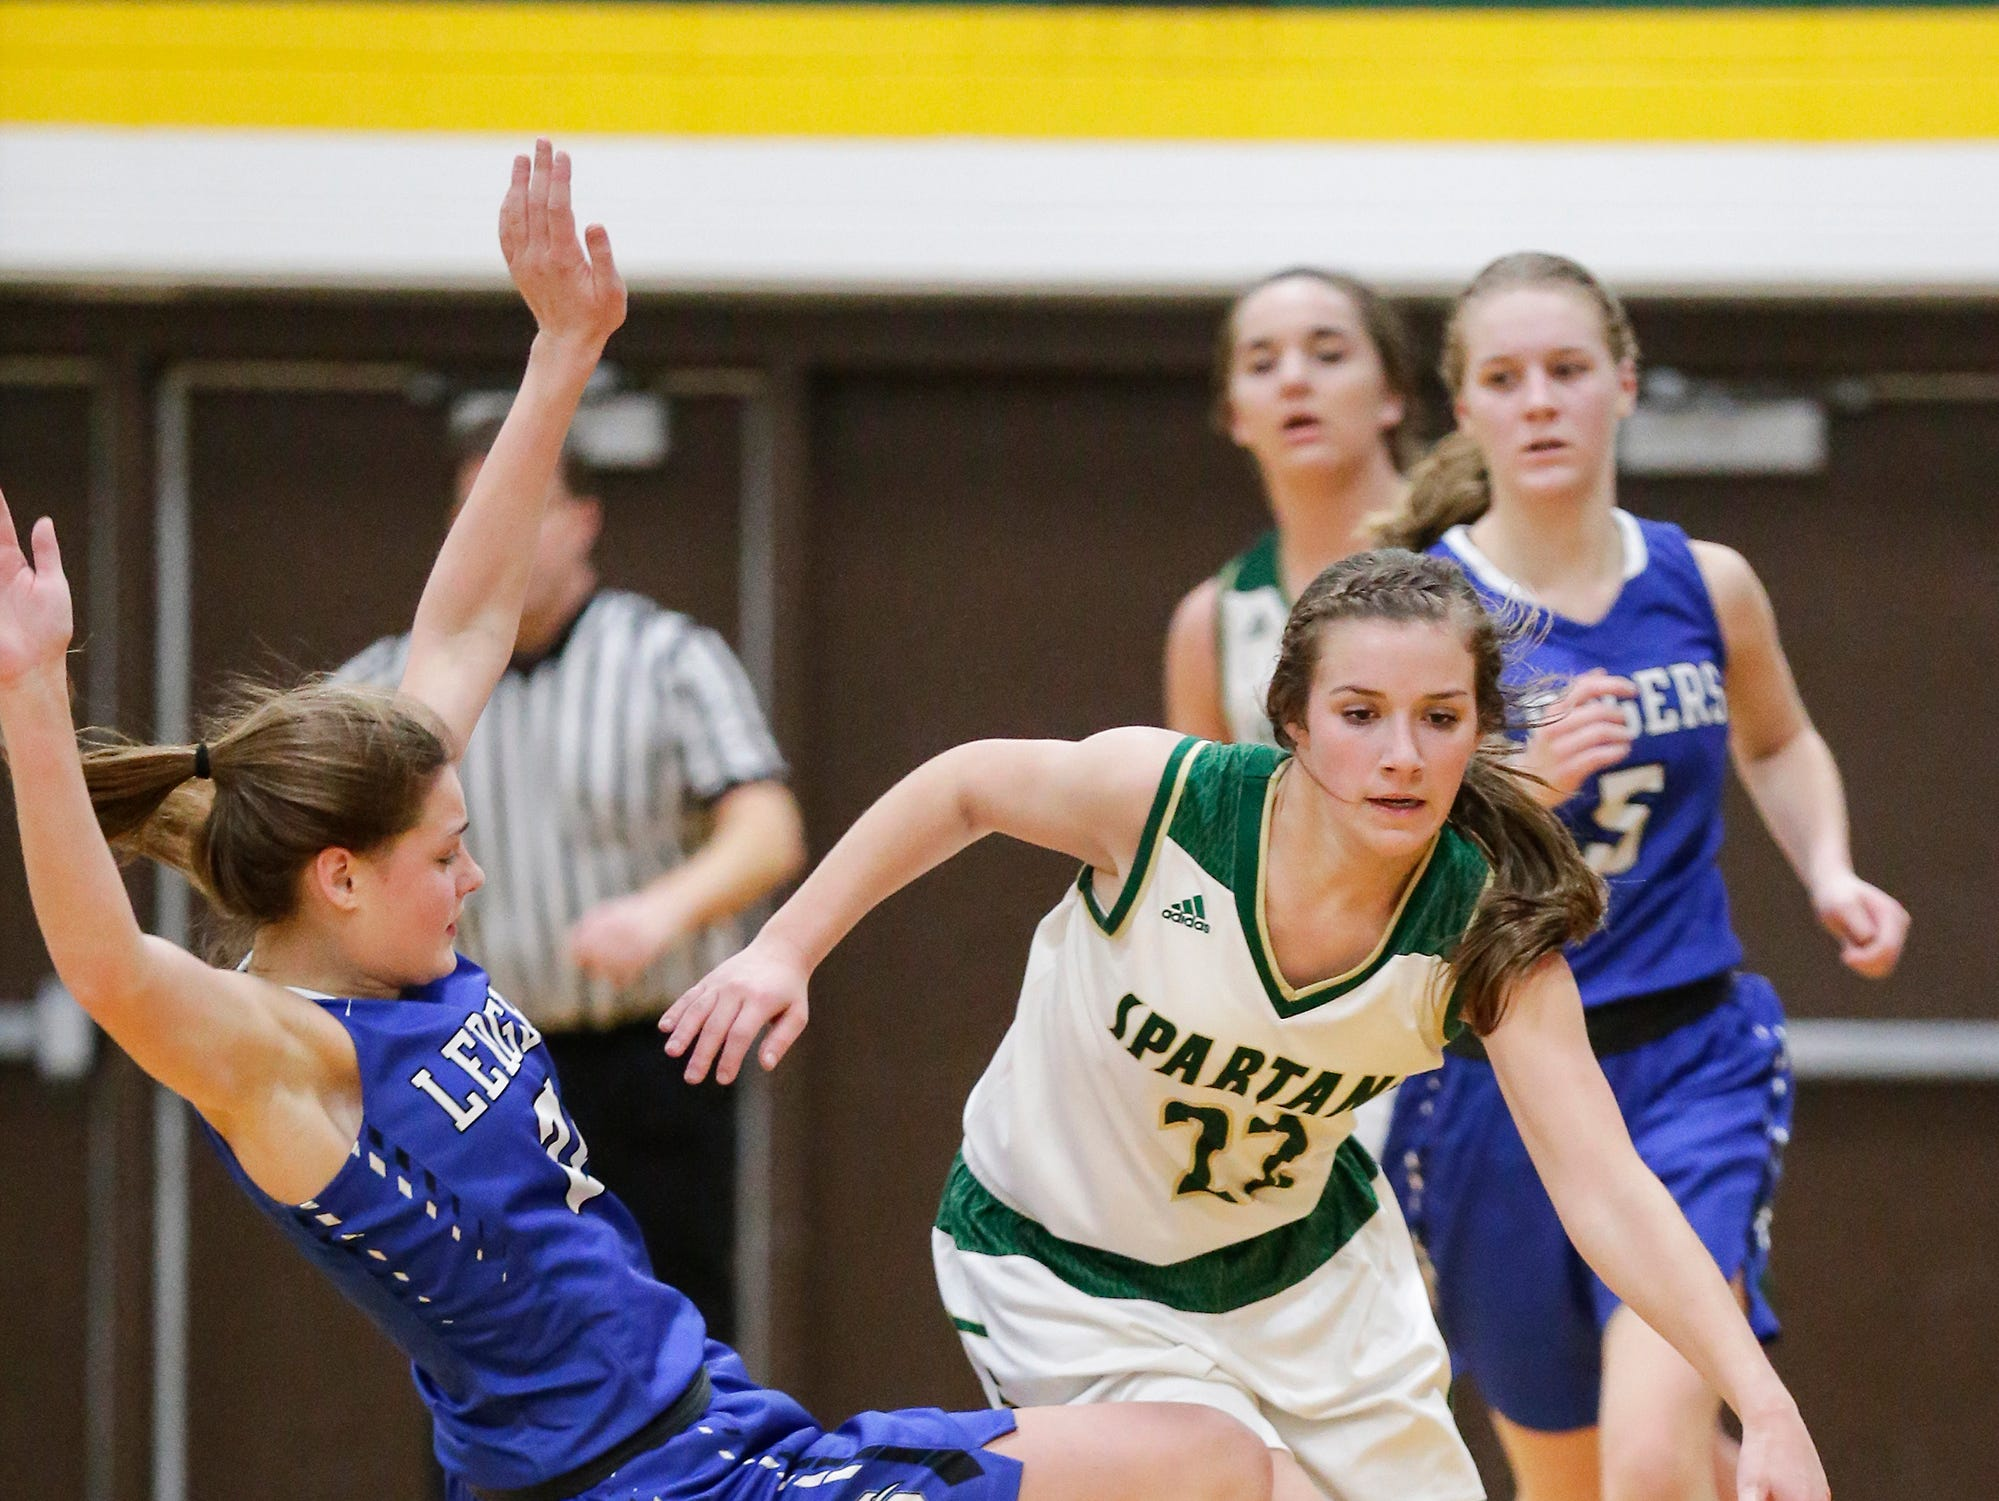 St. Mary's Springs Academy girls basketball's Jennifer Chatterton gets called for a foul while defending against Laconia High School's Haley Rens Tuesday, January 15, 2019 during their game in Rosendale. Laconia won the game 57-45. Doug Raflik/USA TODAY NETWORK-Wisconsin